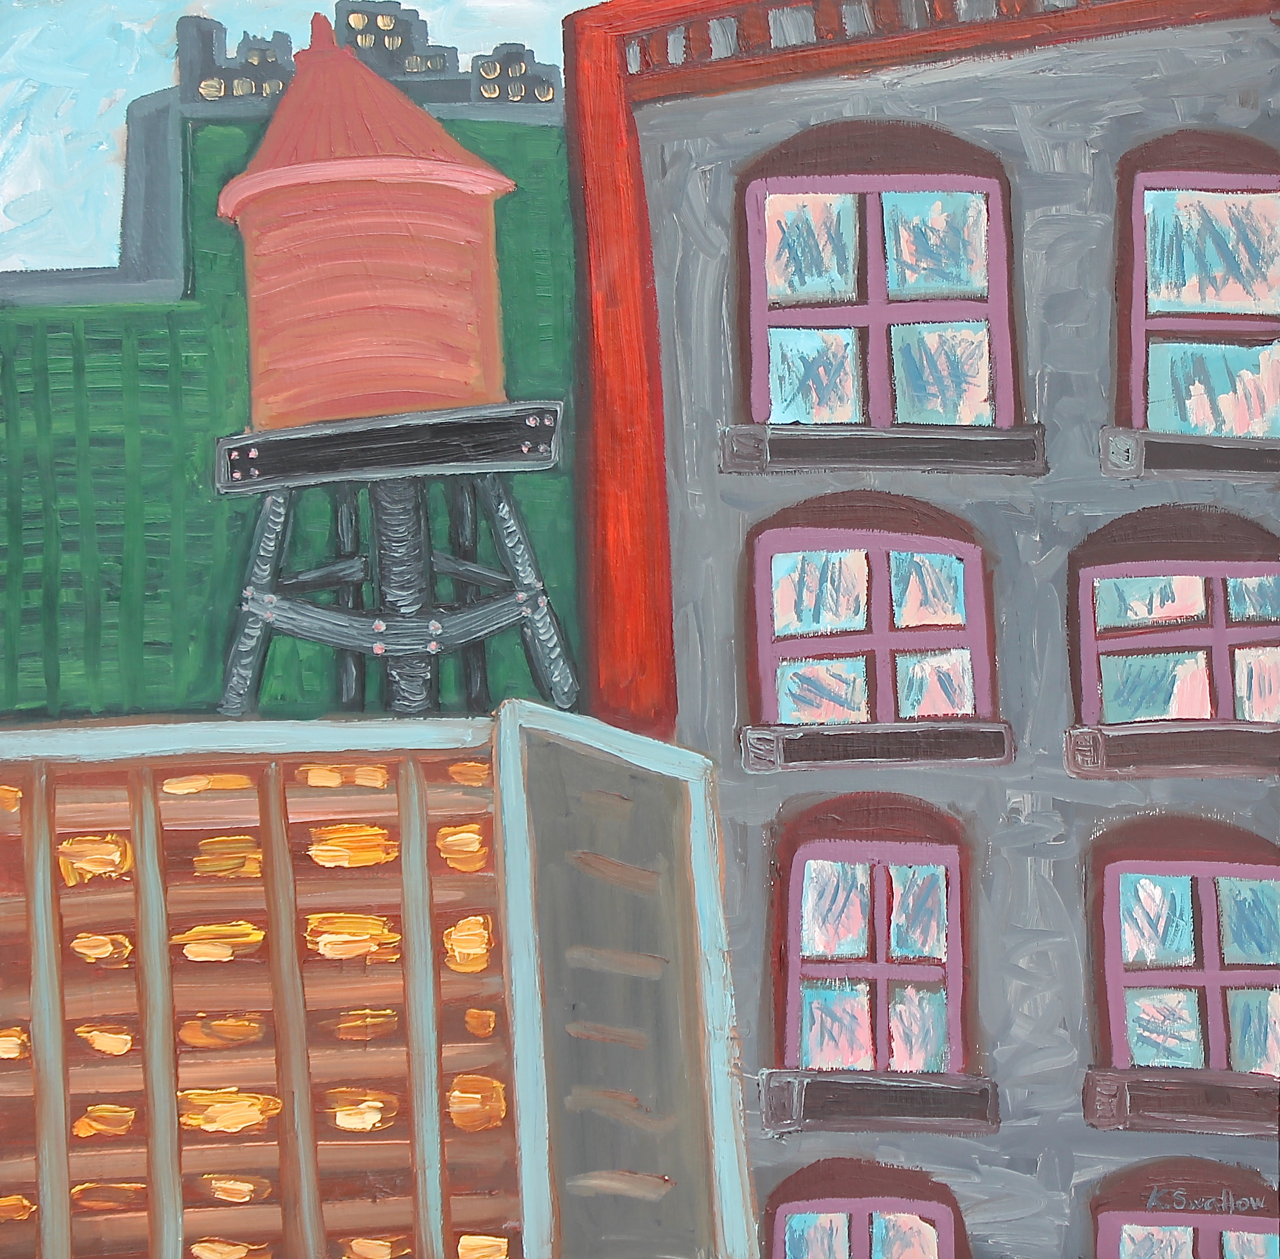 South State Street Lofts, oil on panel, 24x24, 2015, $300